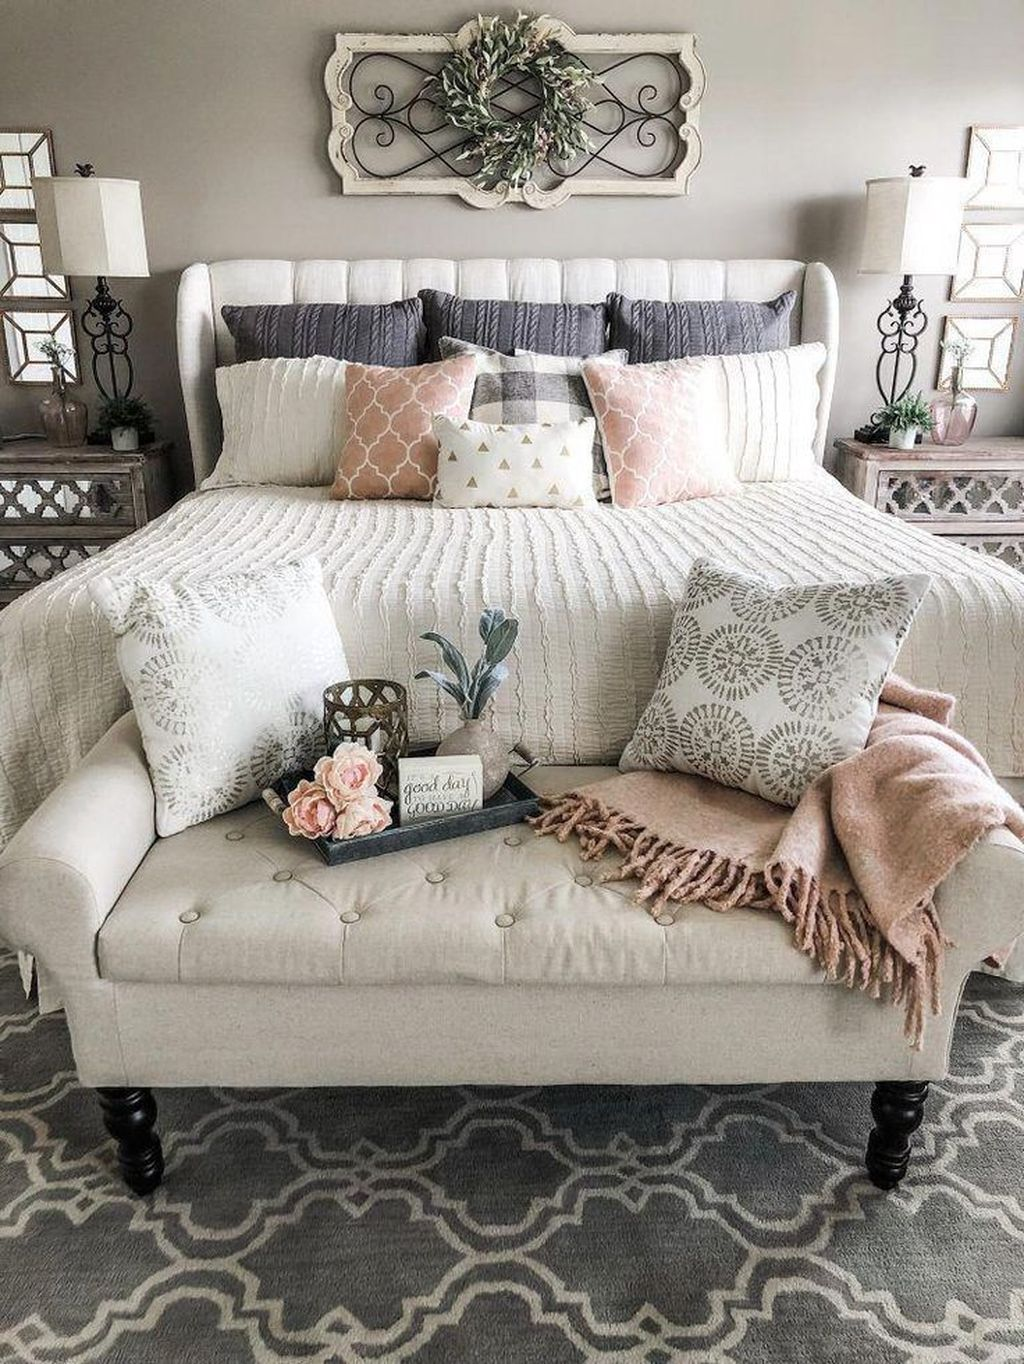 Lovely Spring Bedroom Decor Ideas Trending This Year 35